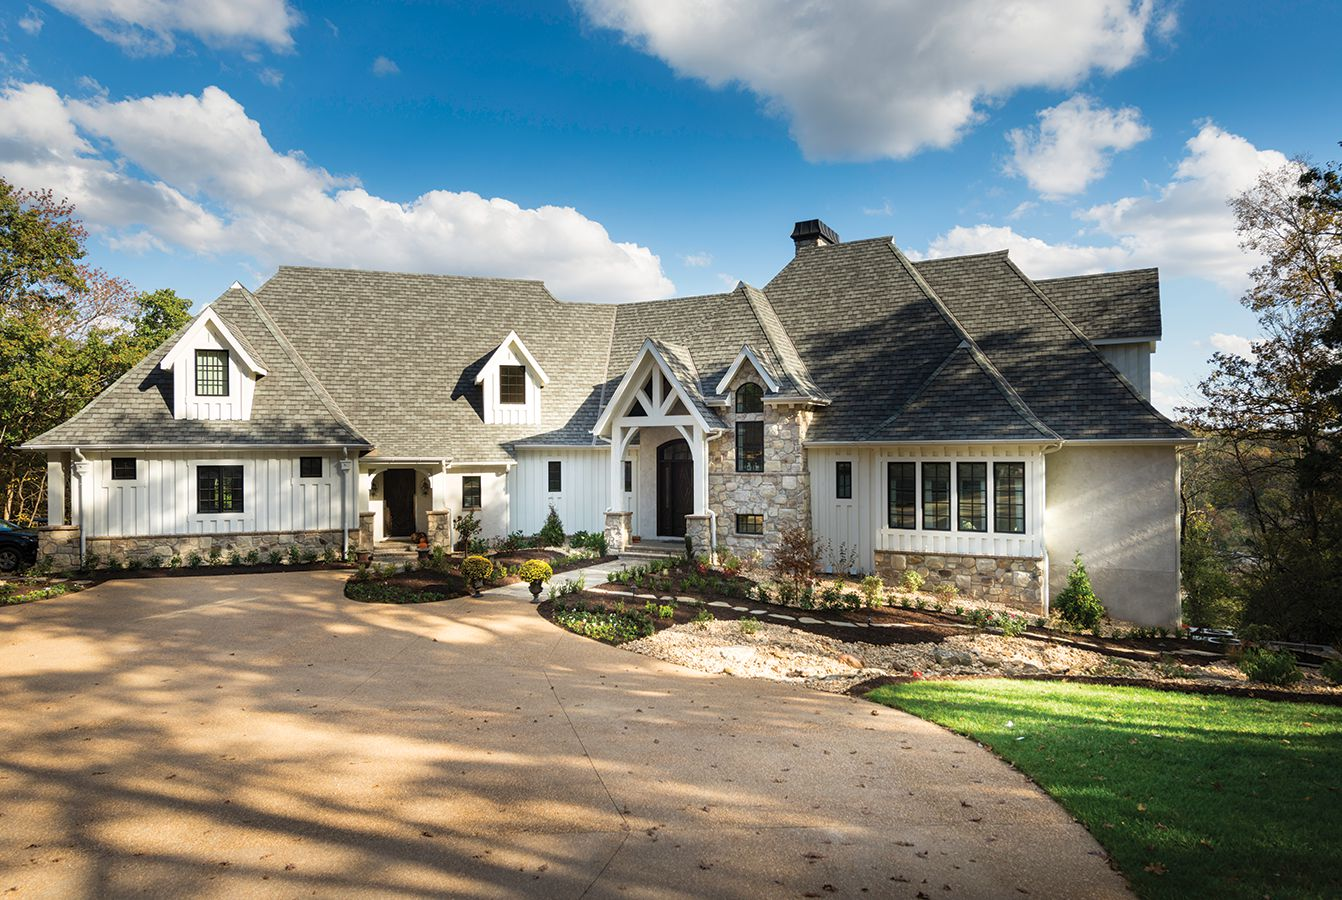 2015 Homes Of The Year